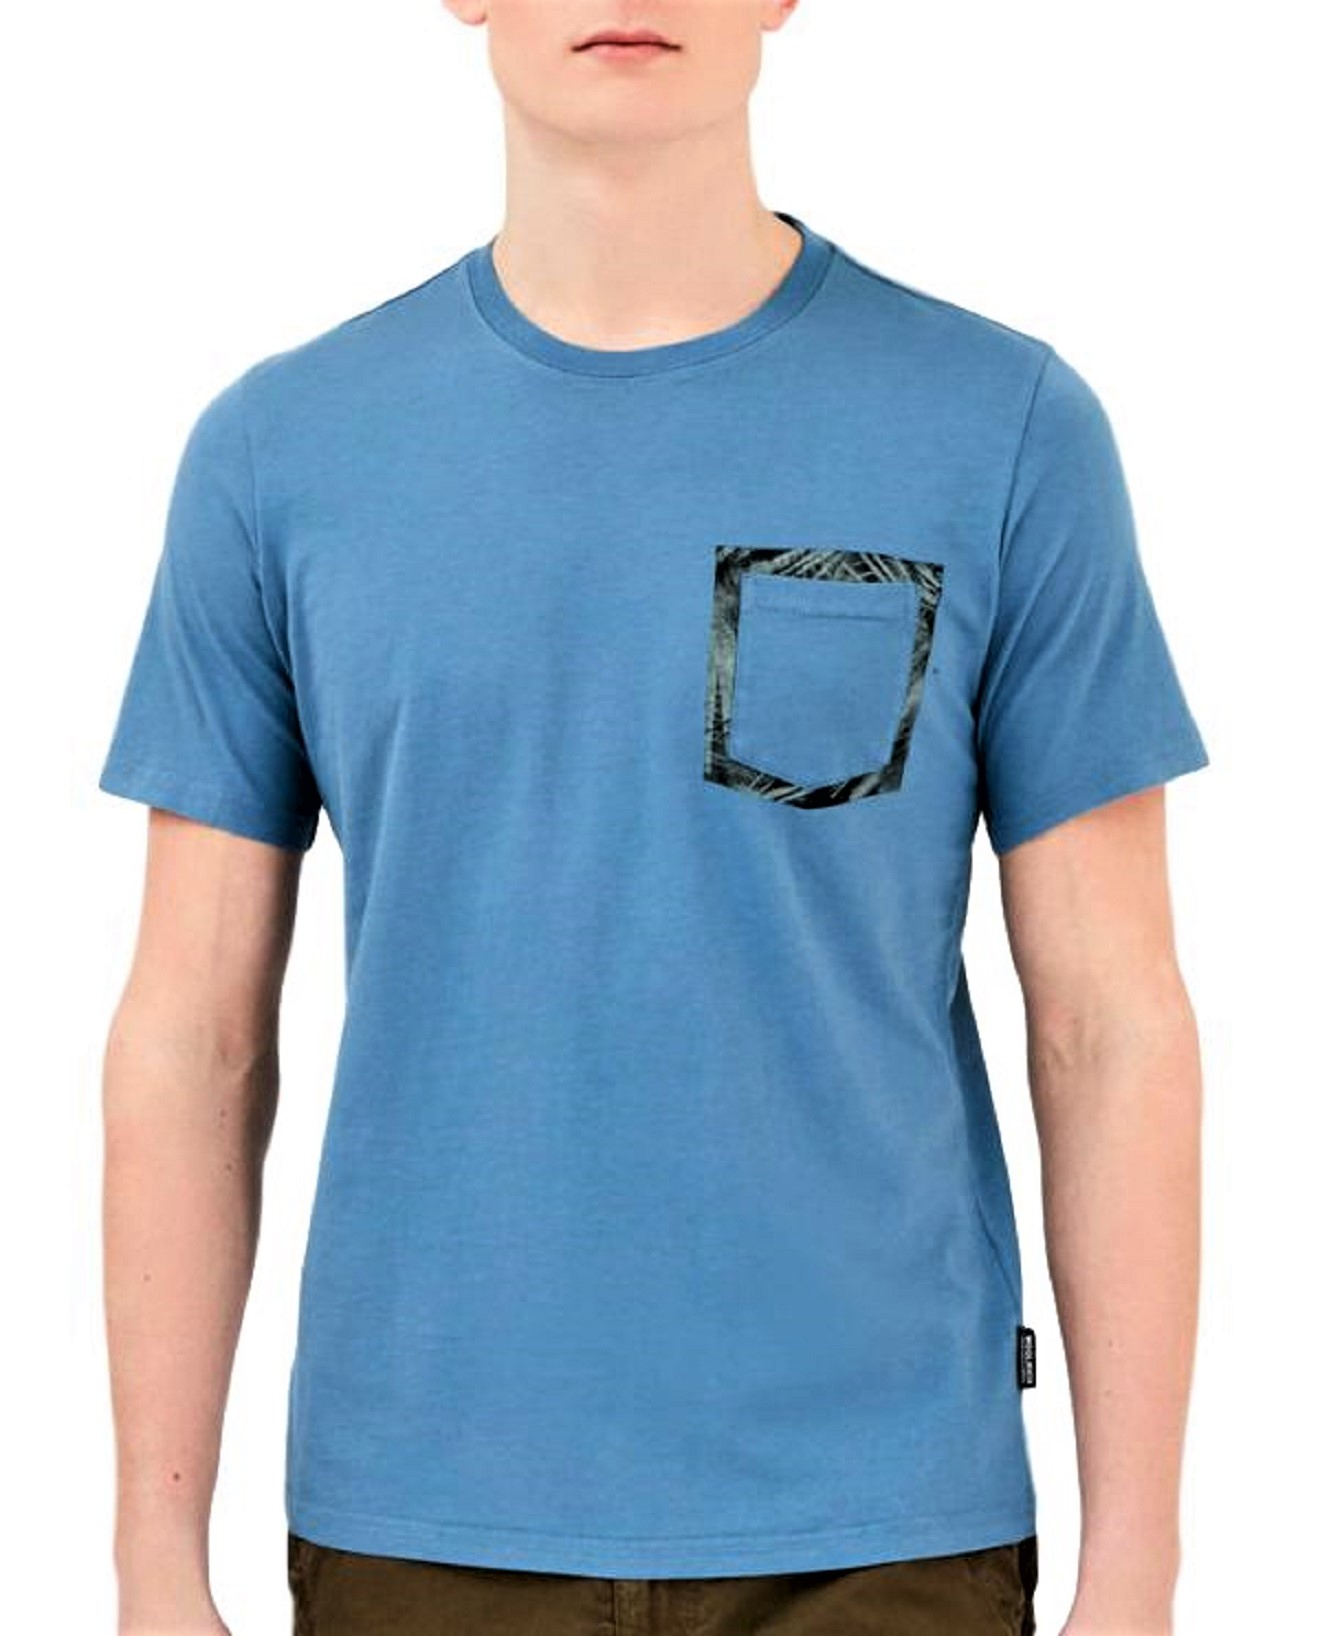 WOOLRICH T SHIRT Floreal Pocket Tee Colore: AVIATION WOTEE1153-UT1486-3115